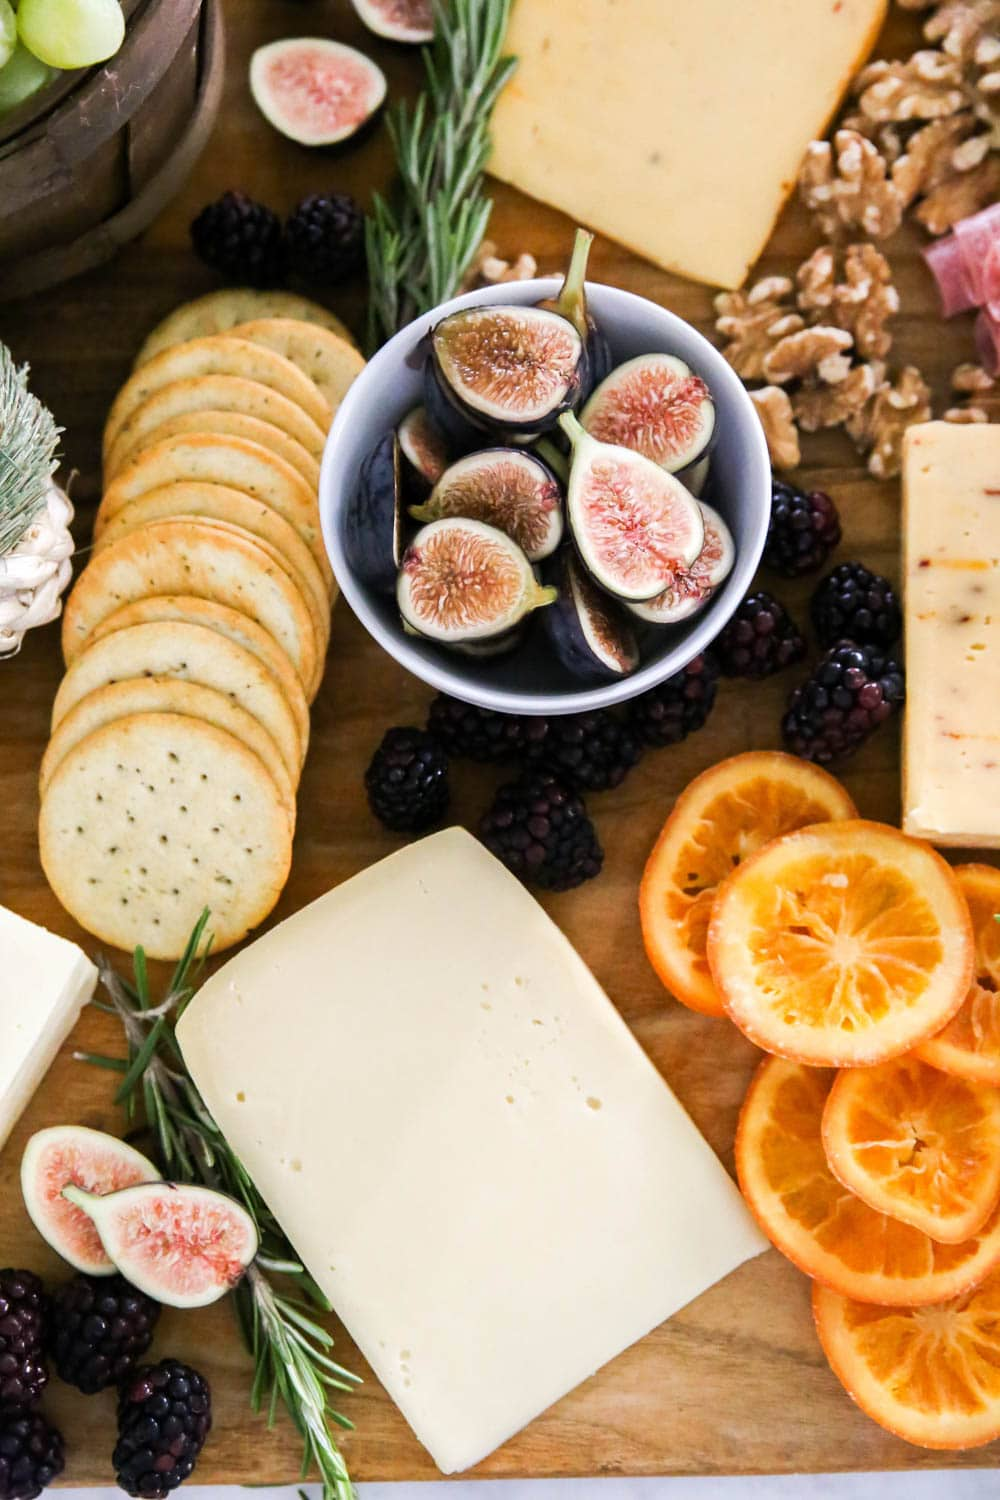 The best cheese for a cheese board is Grand Cru! #ABlissfulNest #cheeseboard #fall #ad #RothCheese